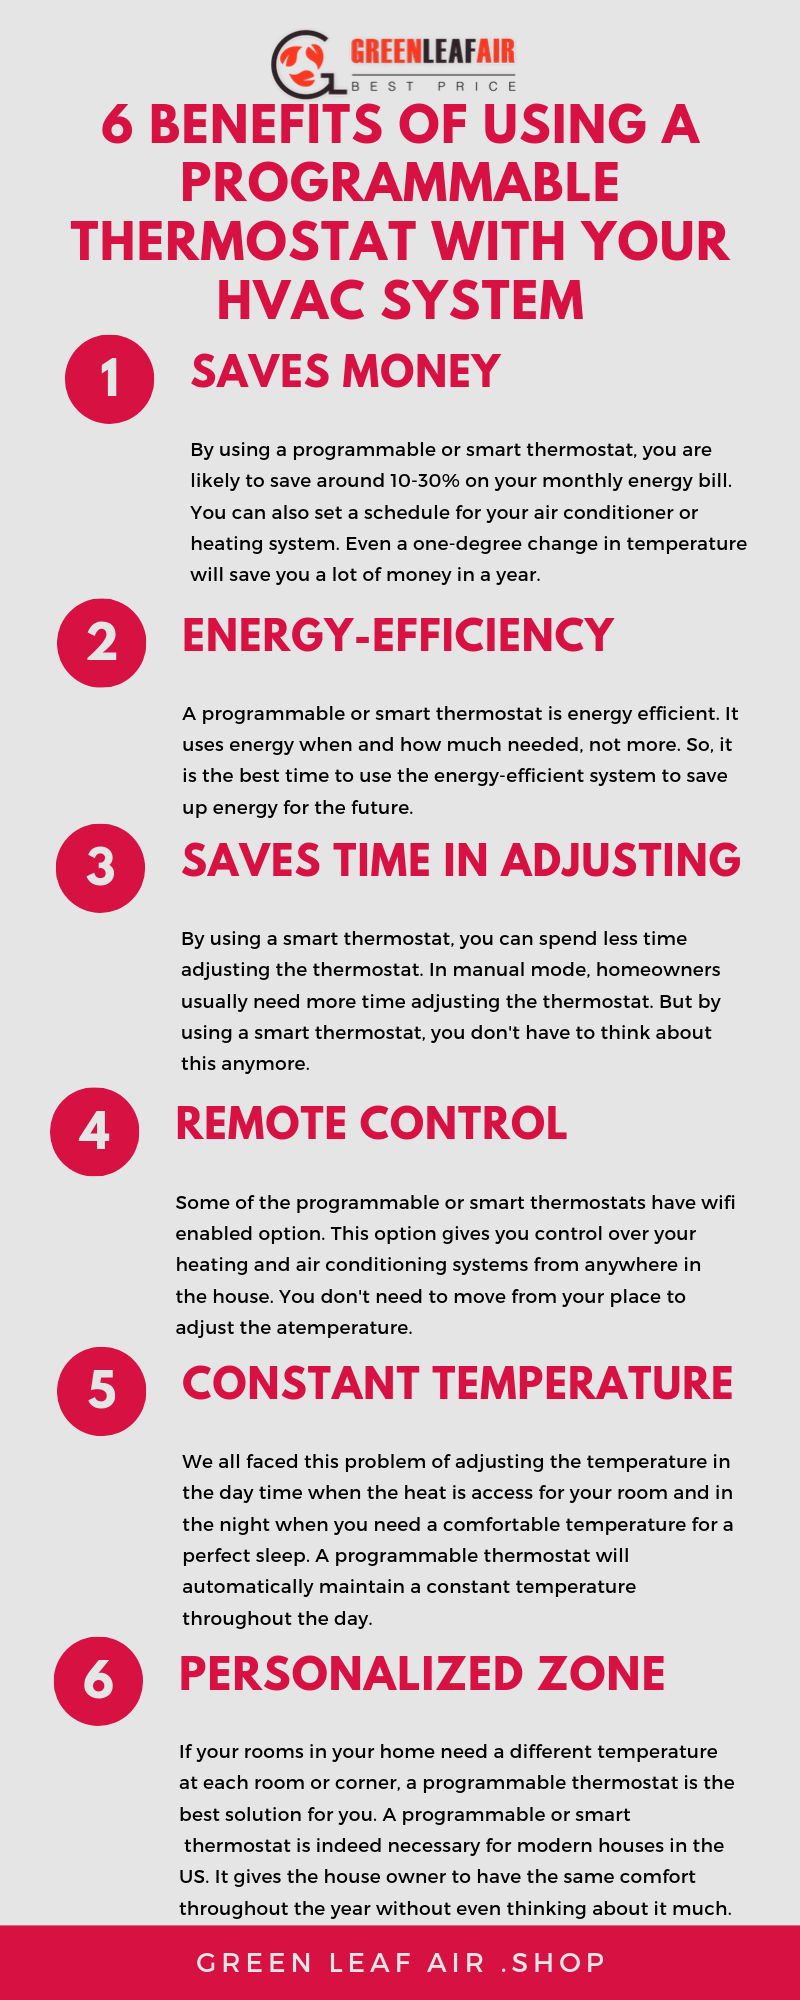 6 Benefits of Using a Programmable Thermostat With Your HVAC System